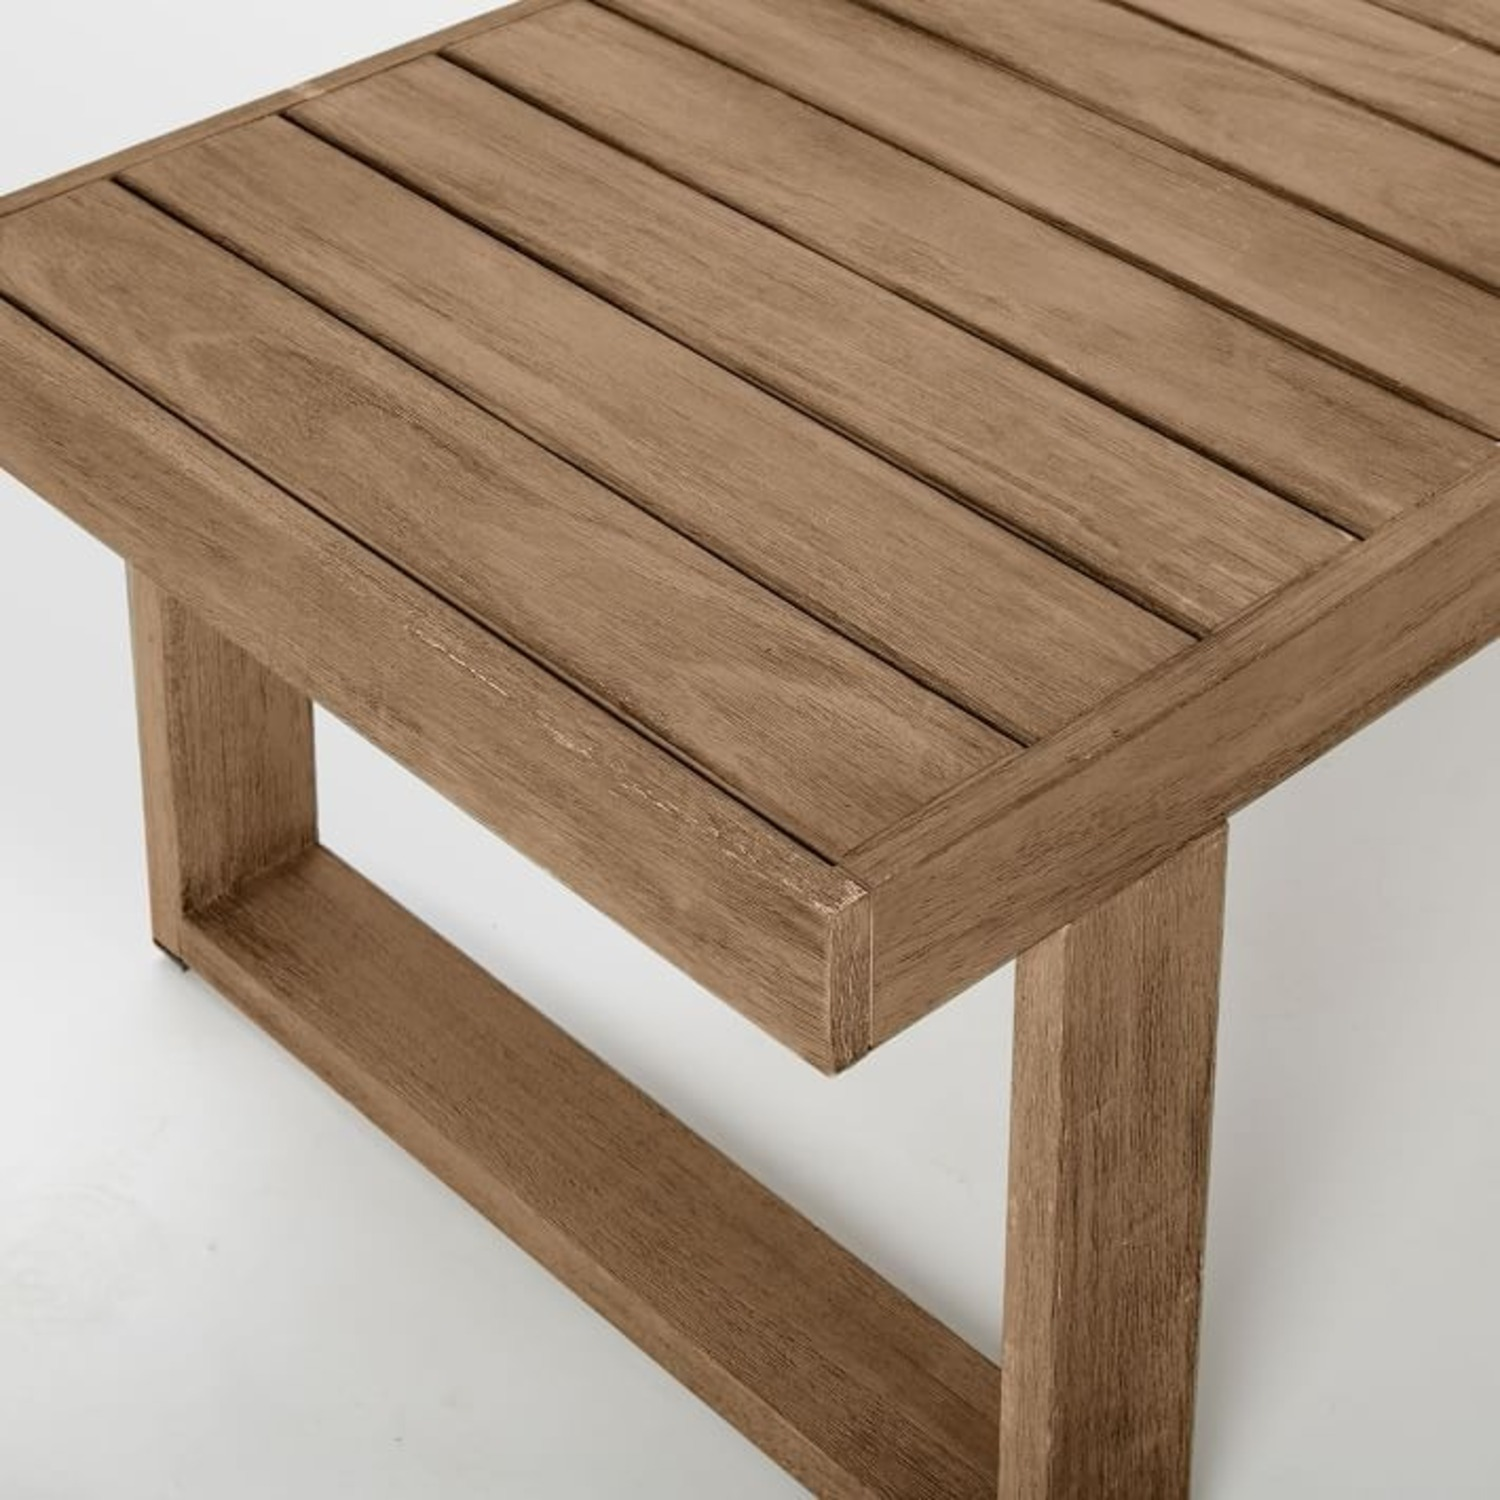 West Elm Portside Outdoor Coffee Table , Driftwood - image-3